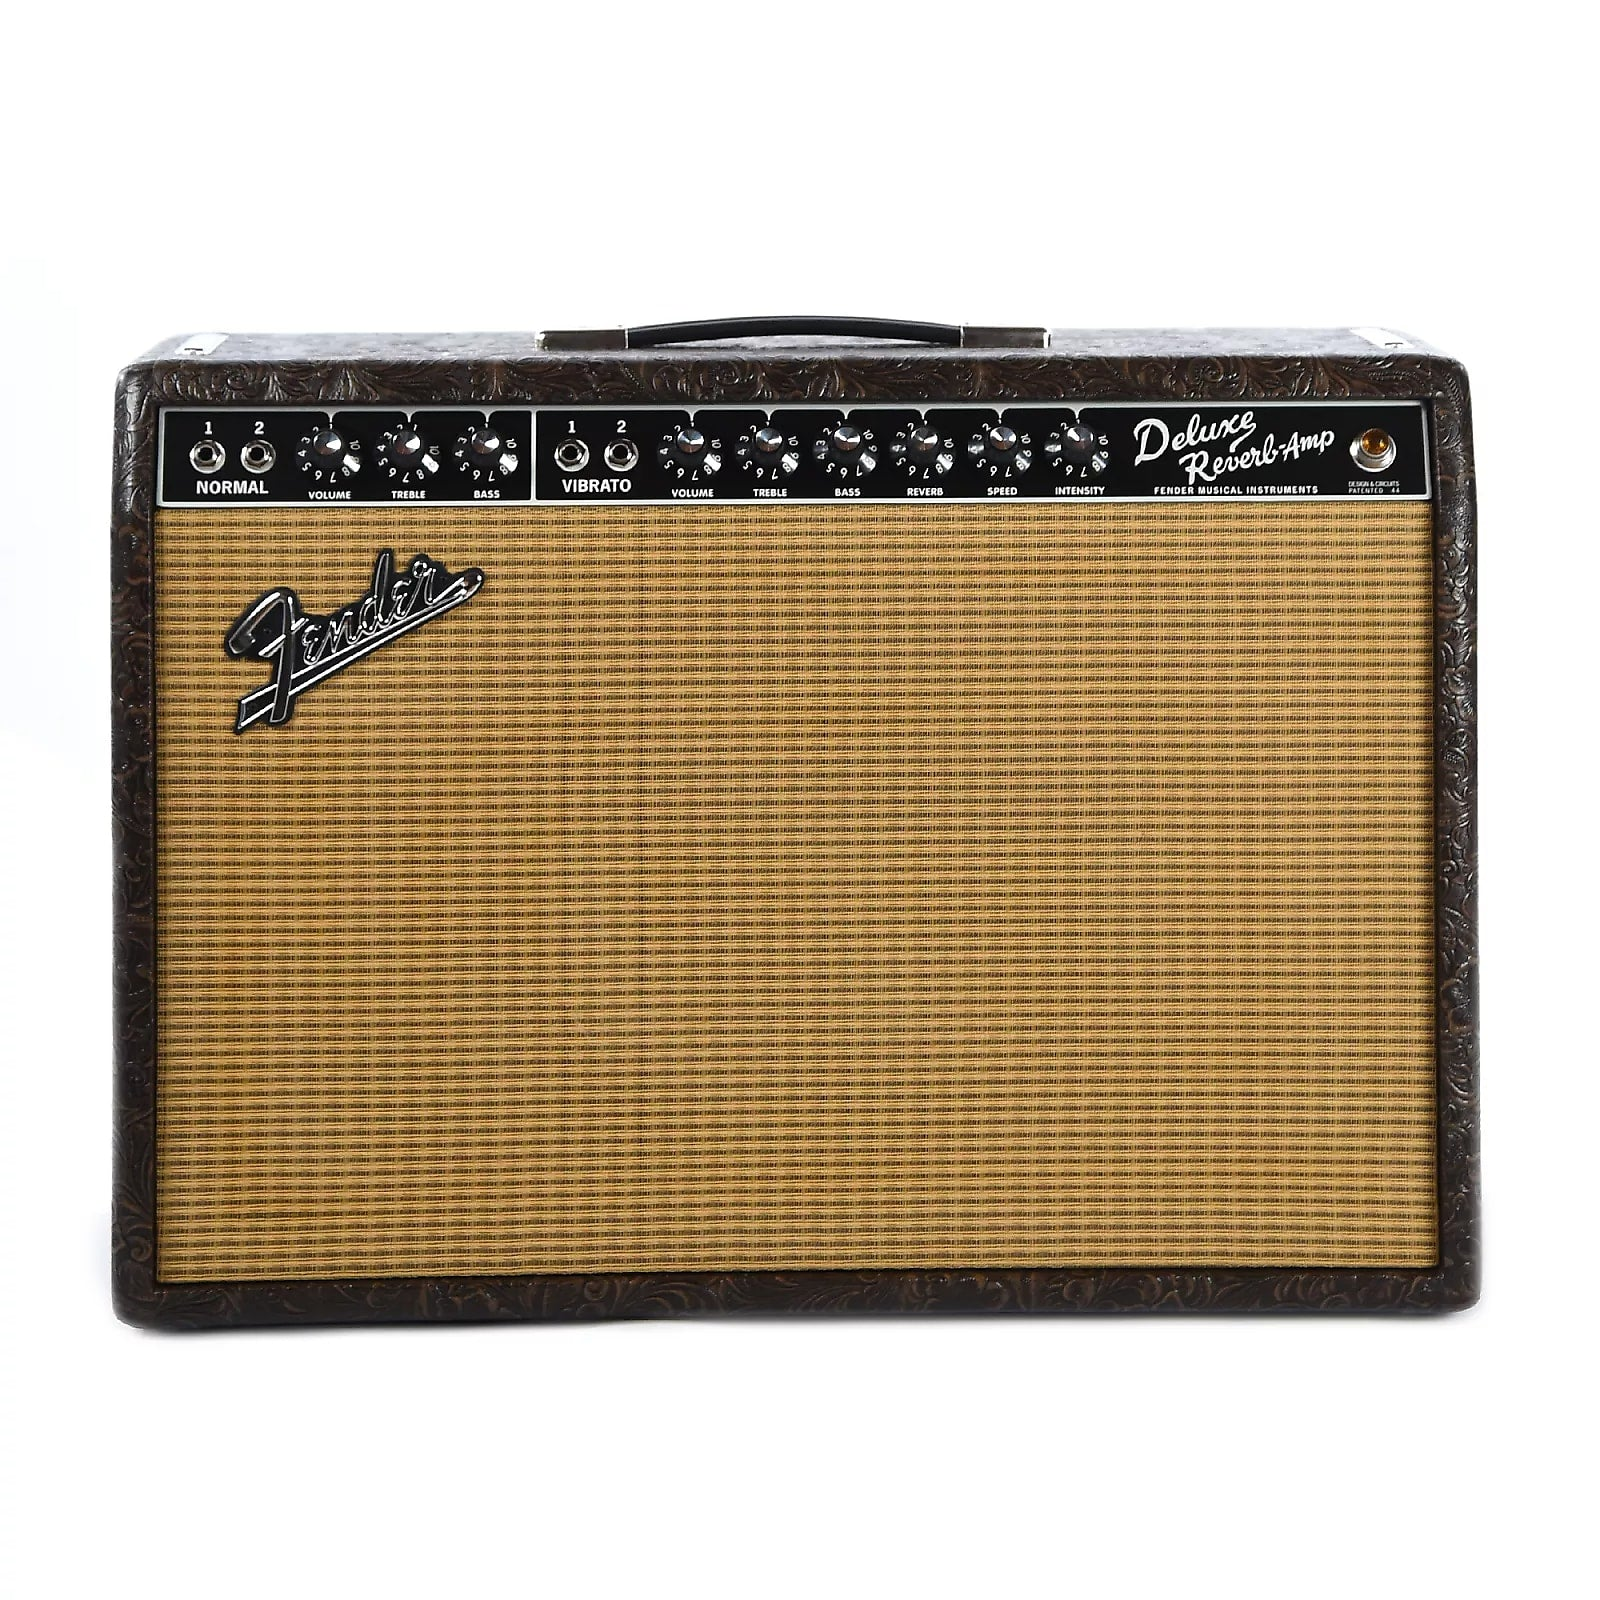 Fender '65 Deluxe Reverb Western Wheat Limited Edition